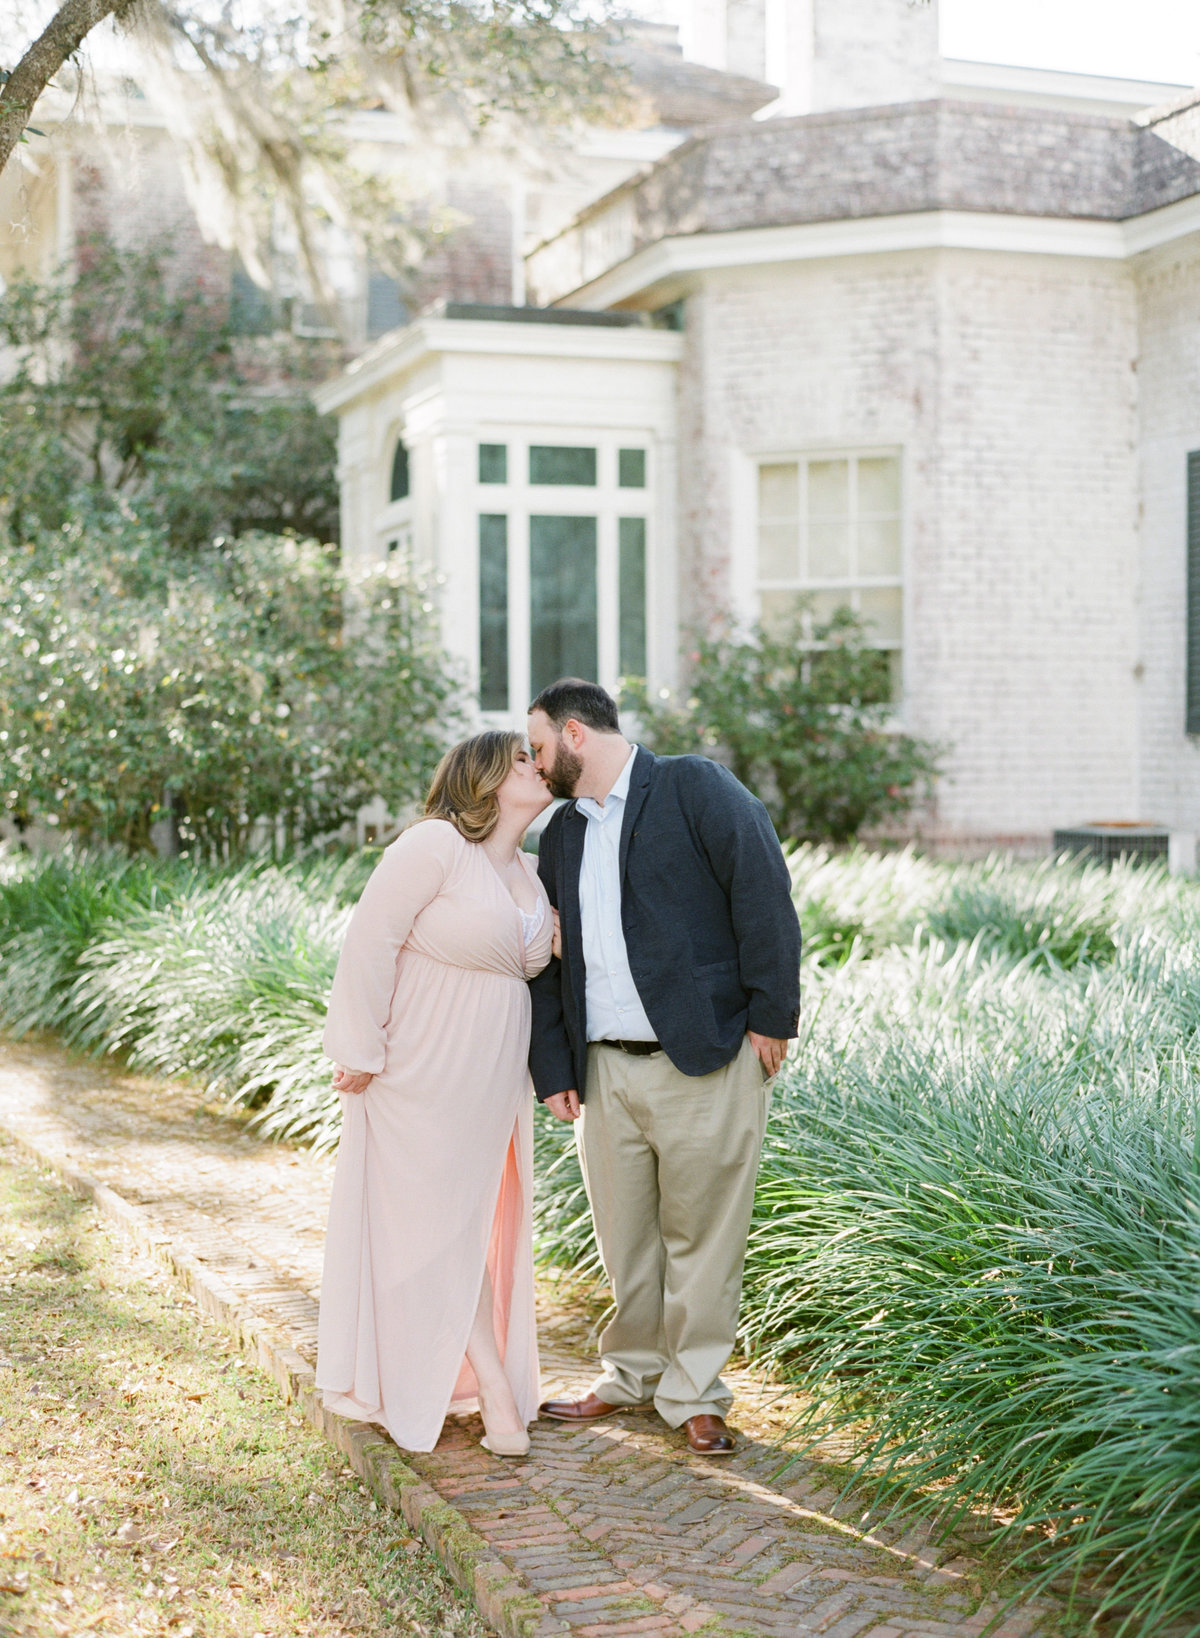 CourtneyWoodhamPhoto-139